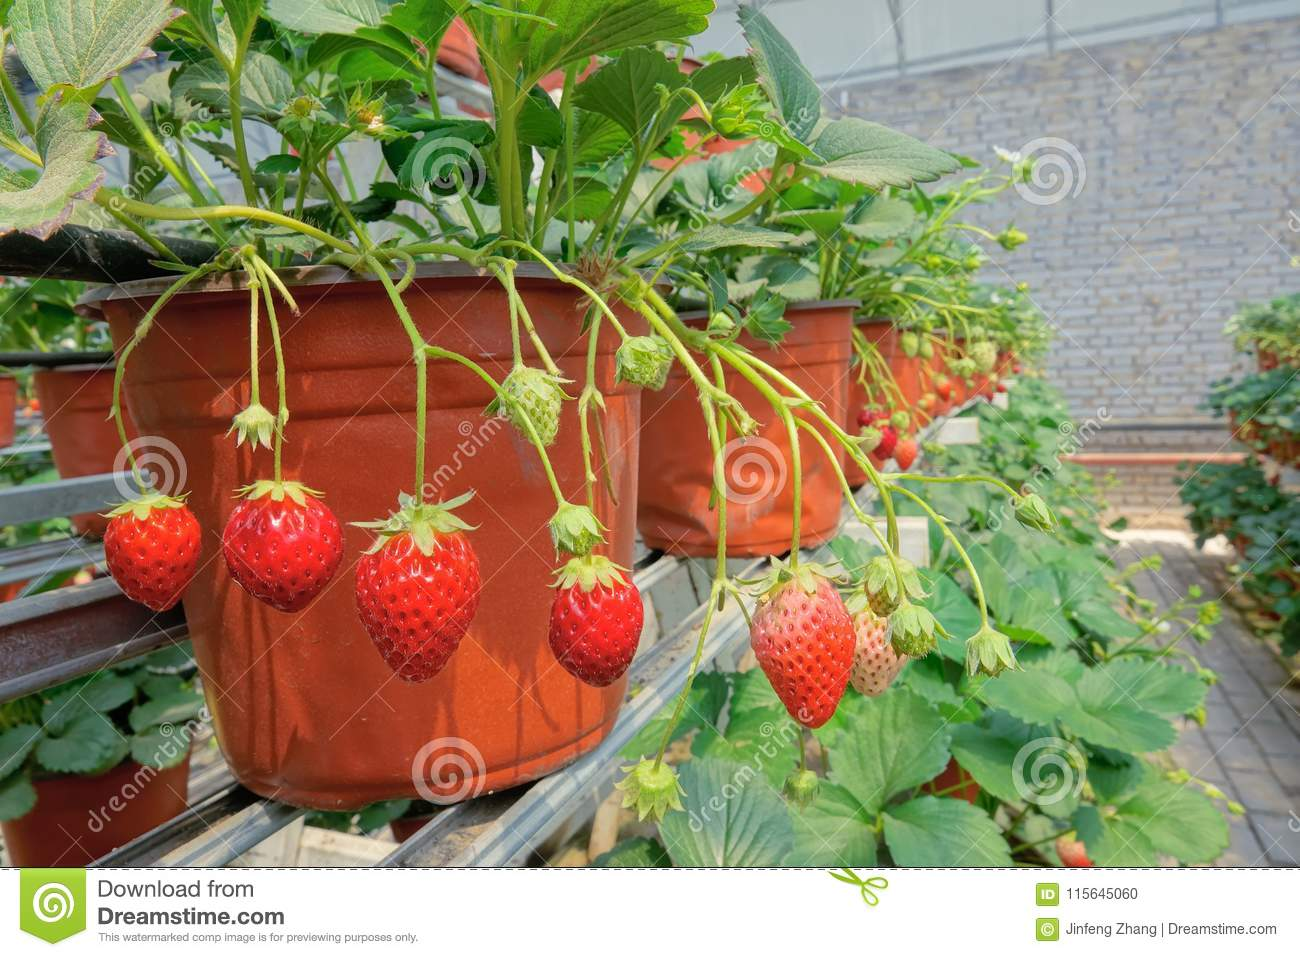 Strawberries hothouse